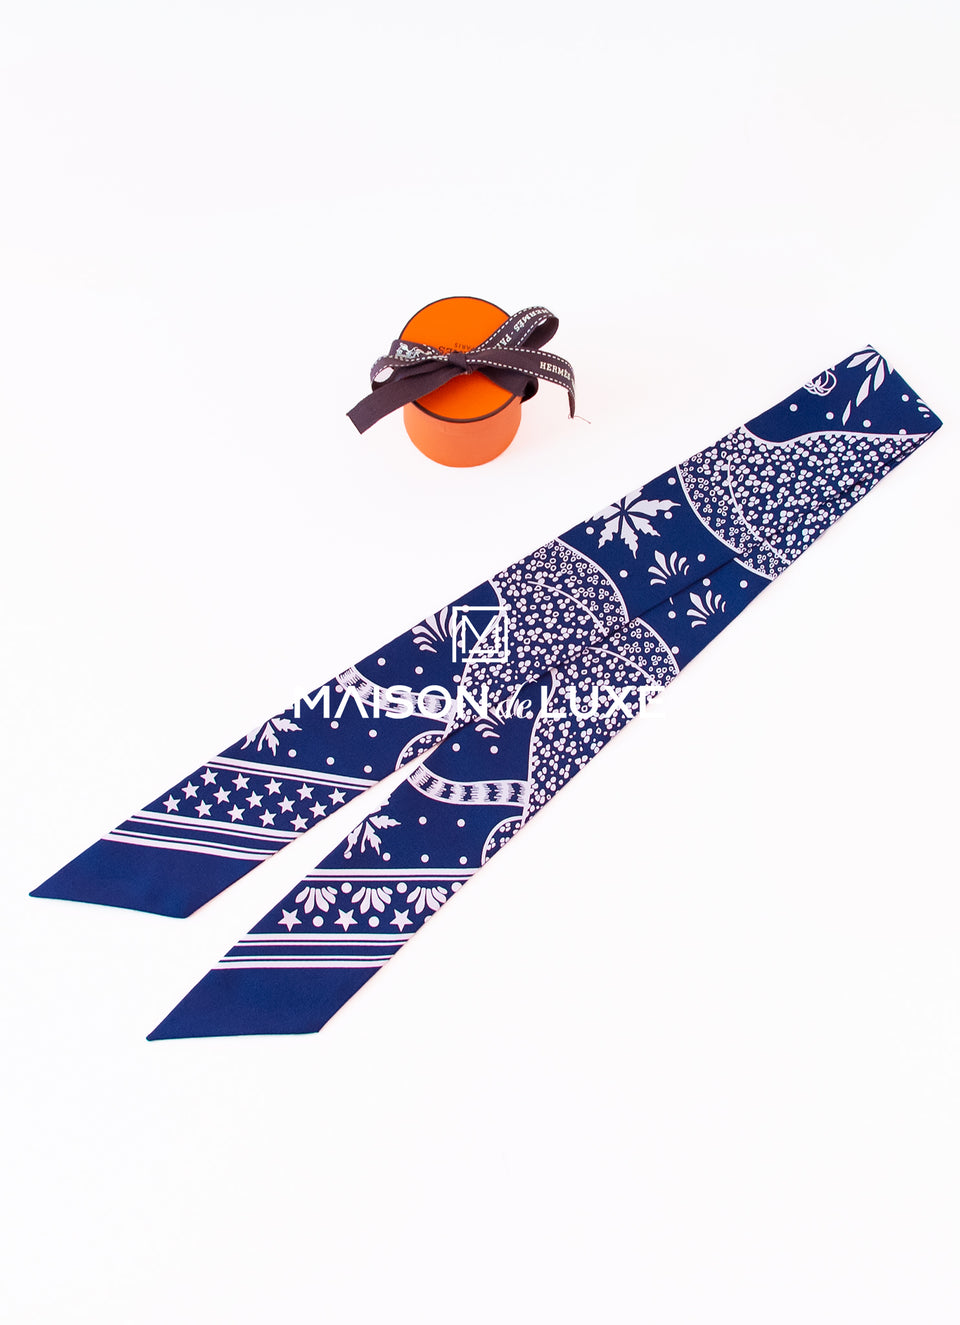 Hermes Navy Les Leopards Bandana Twilly